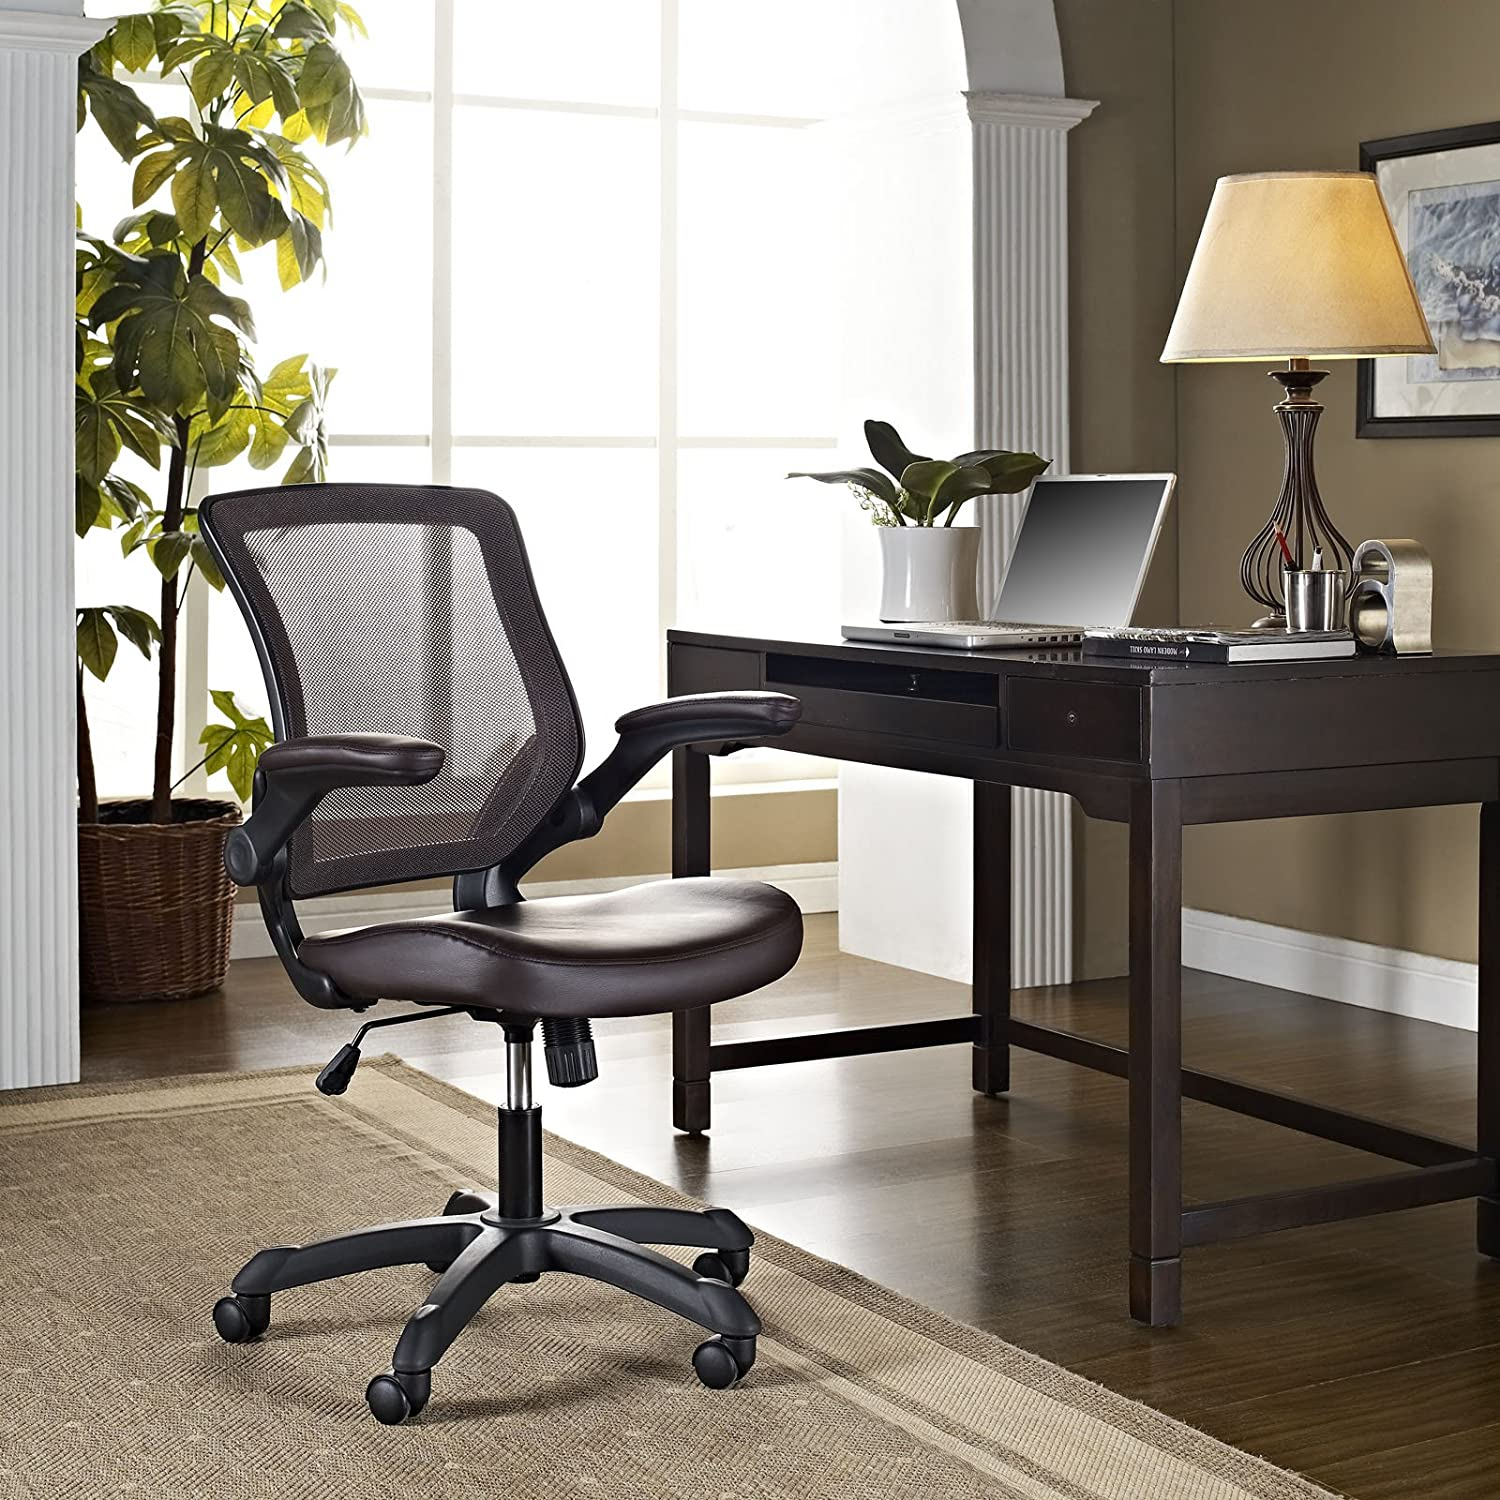 Amazon Modway Veer fice Chair with Mesh Back and Mesh Seat